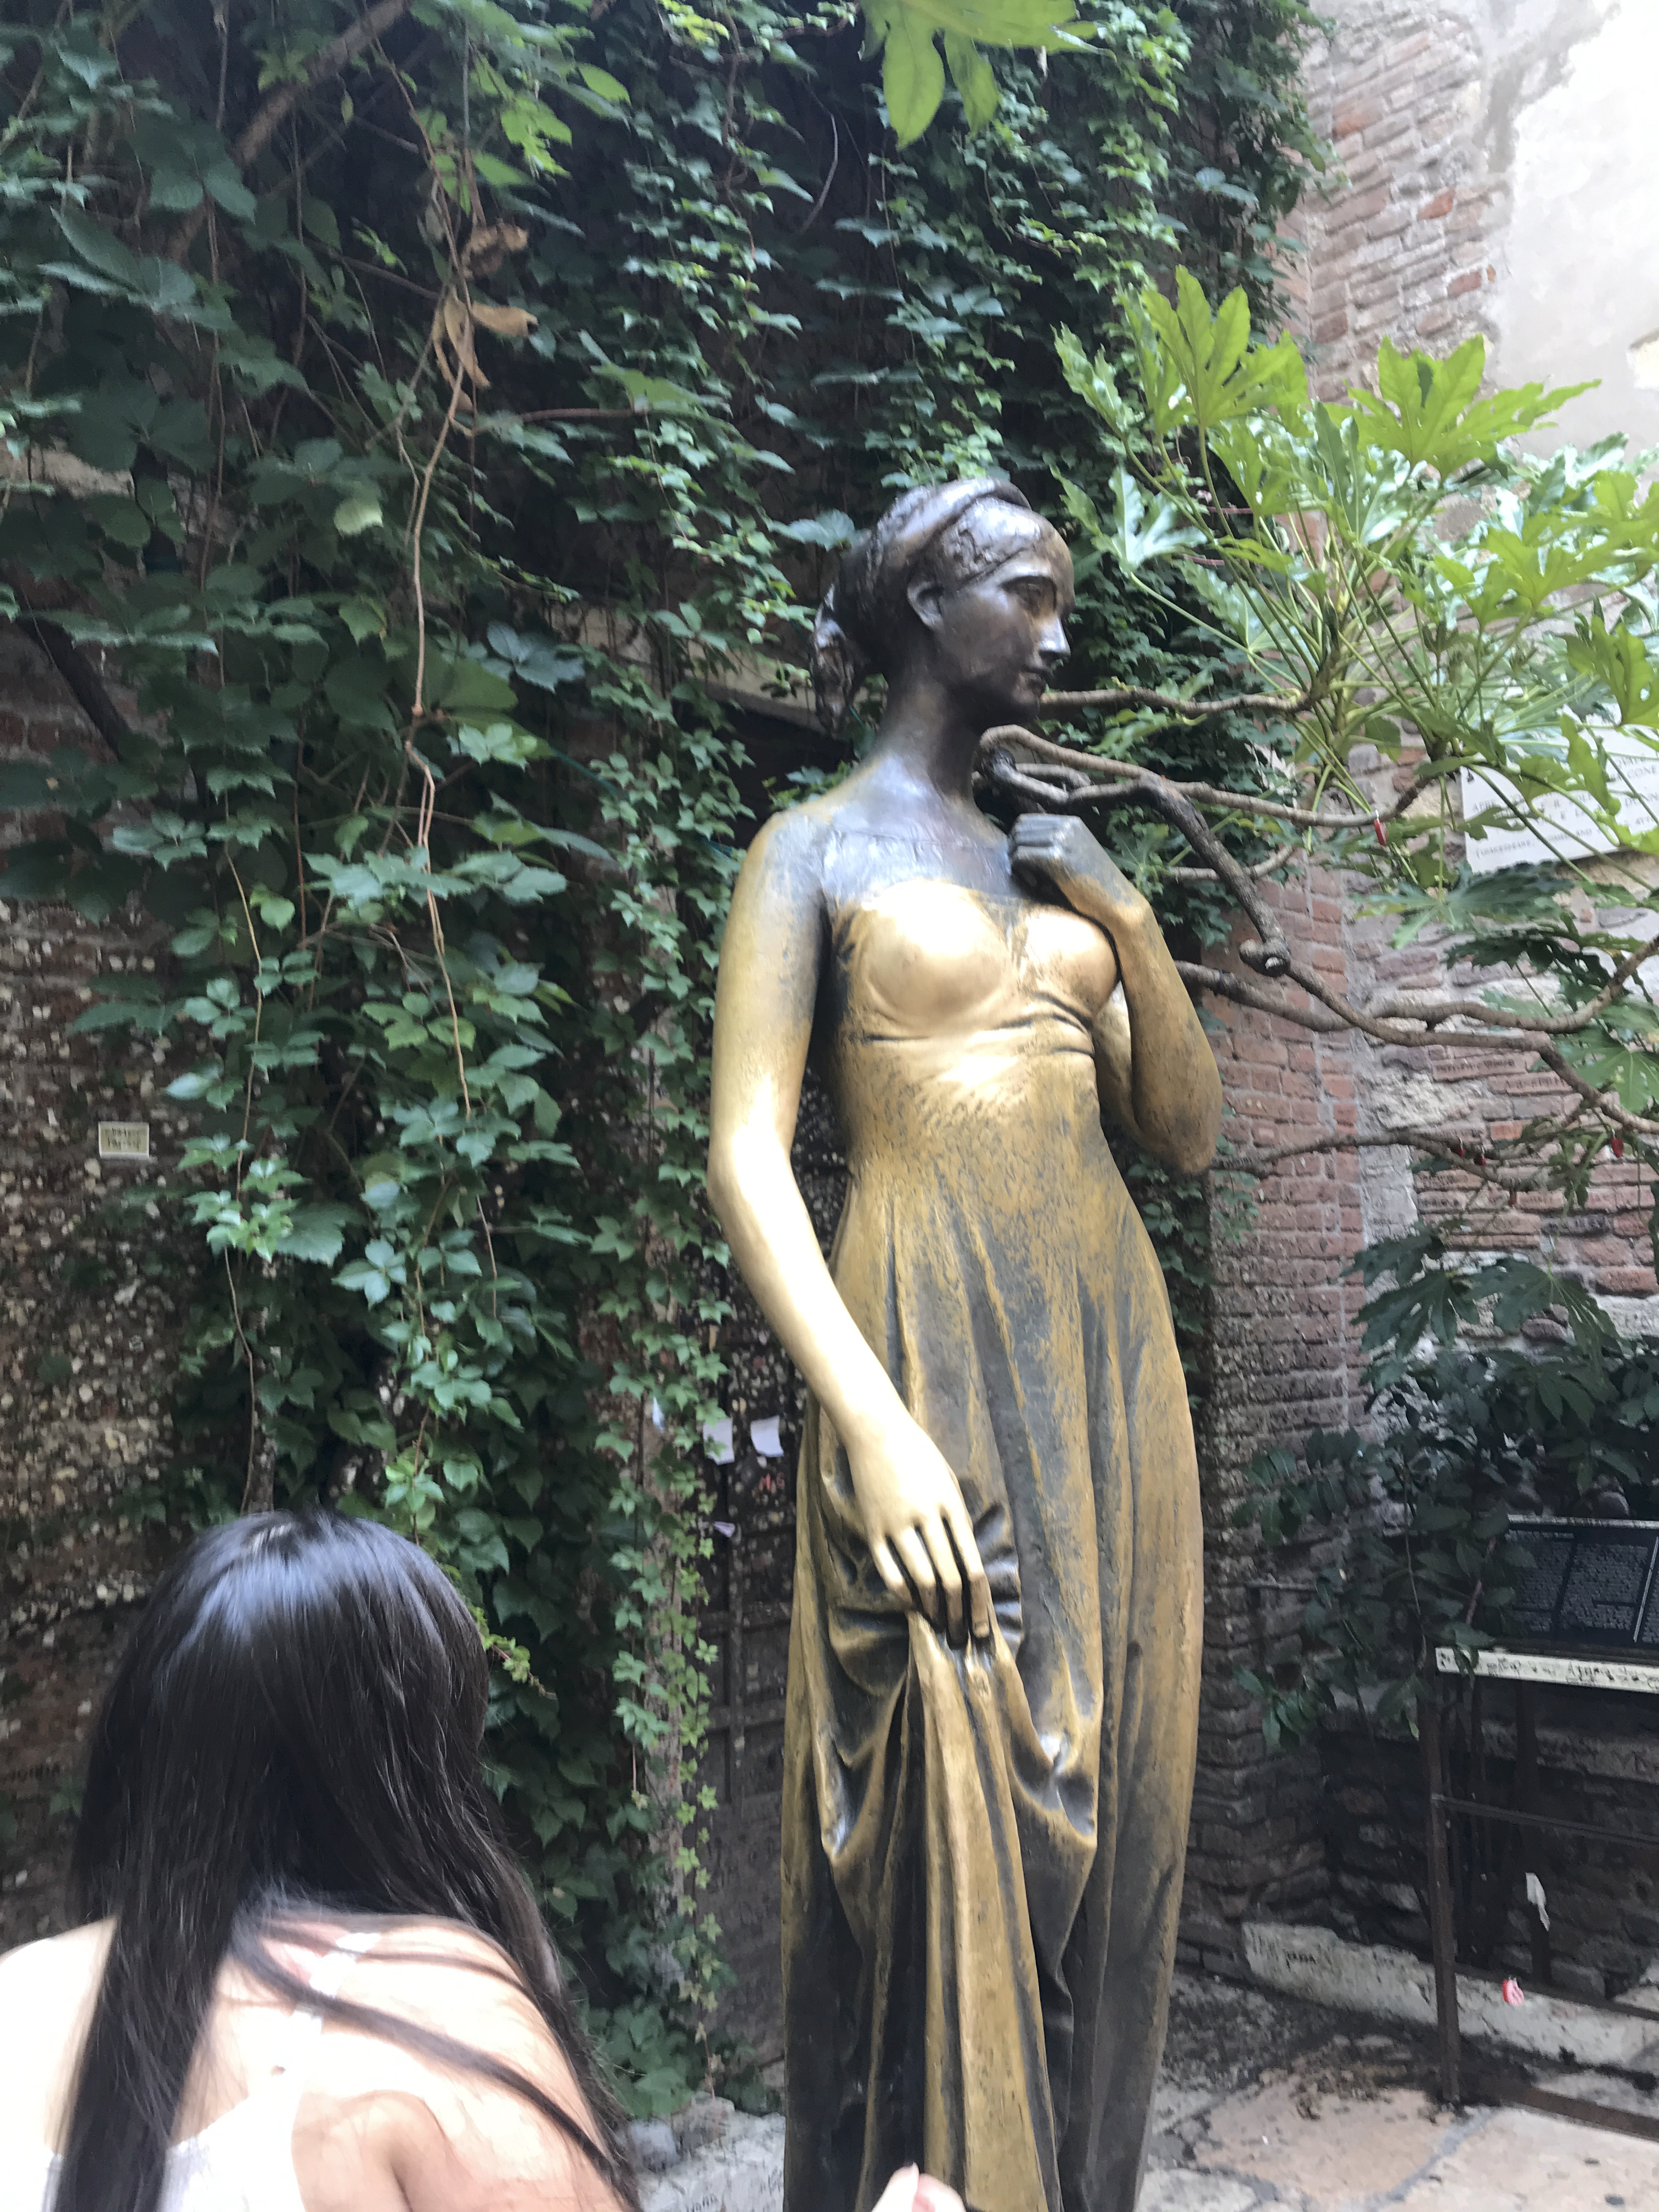 A photo of a tourist looking at the gold statue of Juliet in a courtyard in Verona, Italy. Photo Courtesy of FoodWaterShoes